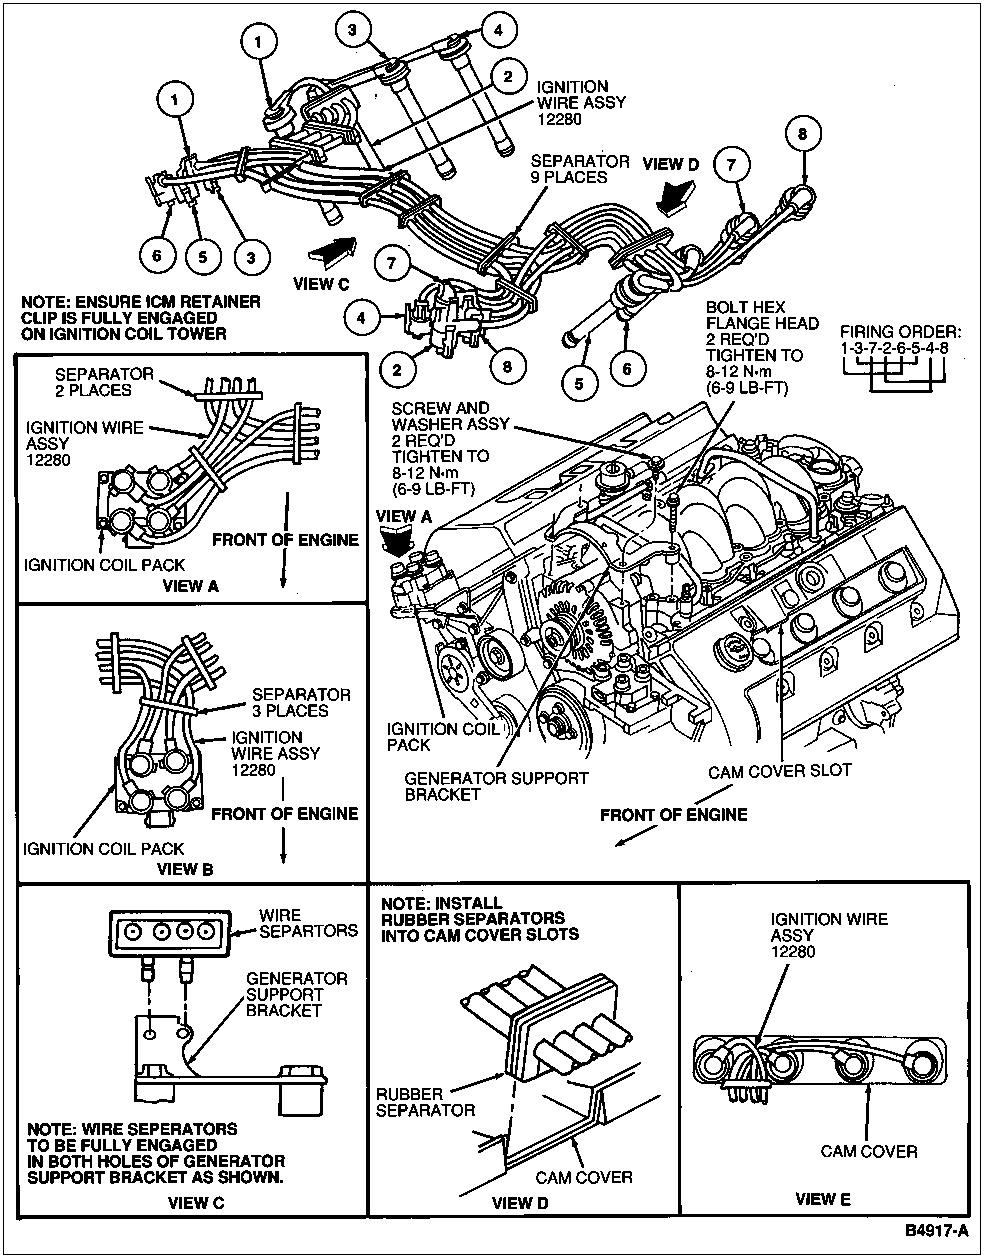 Mustang Wiring Diagram Besides 2000 Lincoln Continental Wiring ... on 94 chevrolet camaro diagram, 94 jeep wrangler diagram, 94 dodge dakota diagram, 94 ford mustang diagram, 94 nissan sentra diagram, 94 jeep grand cherokee diagram, 94 oldsmobile bravada diagram, 94 mitsubishi eclipse diagram, 94 honda accord diagram, 94 cadillac eldorado diagram,